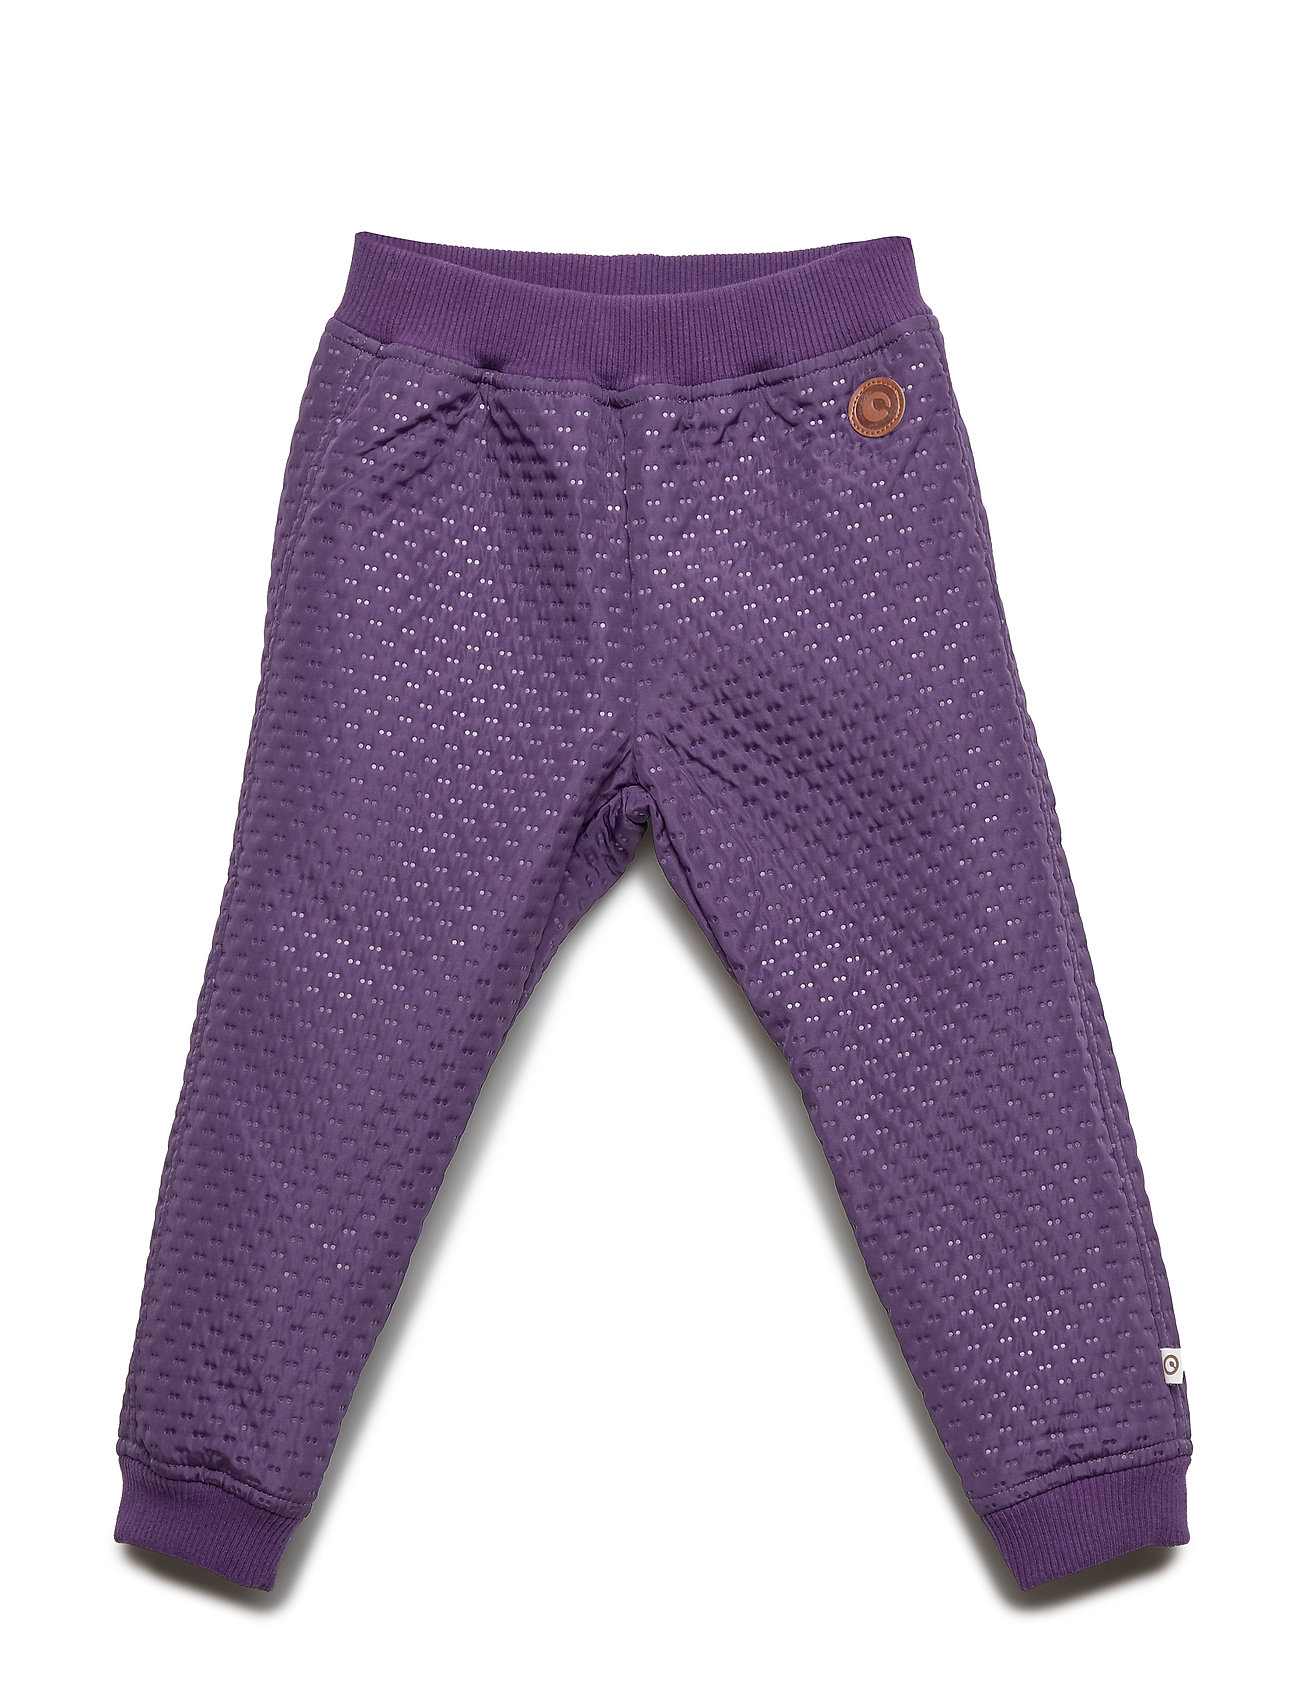 Müsli by Green Cotton Thermo pants - LAVENDER